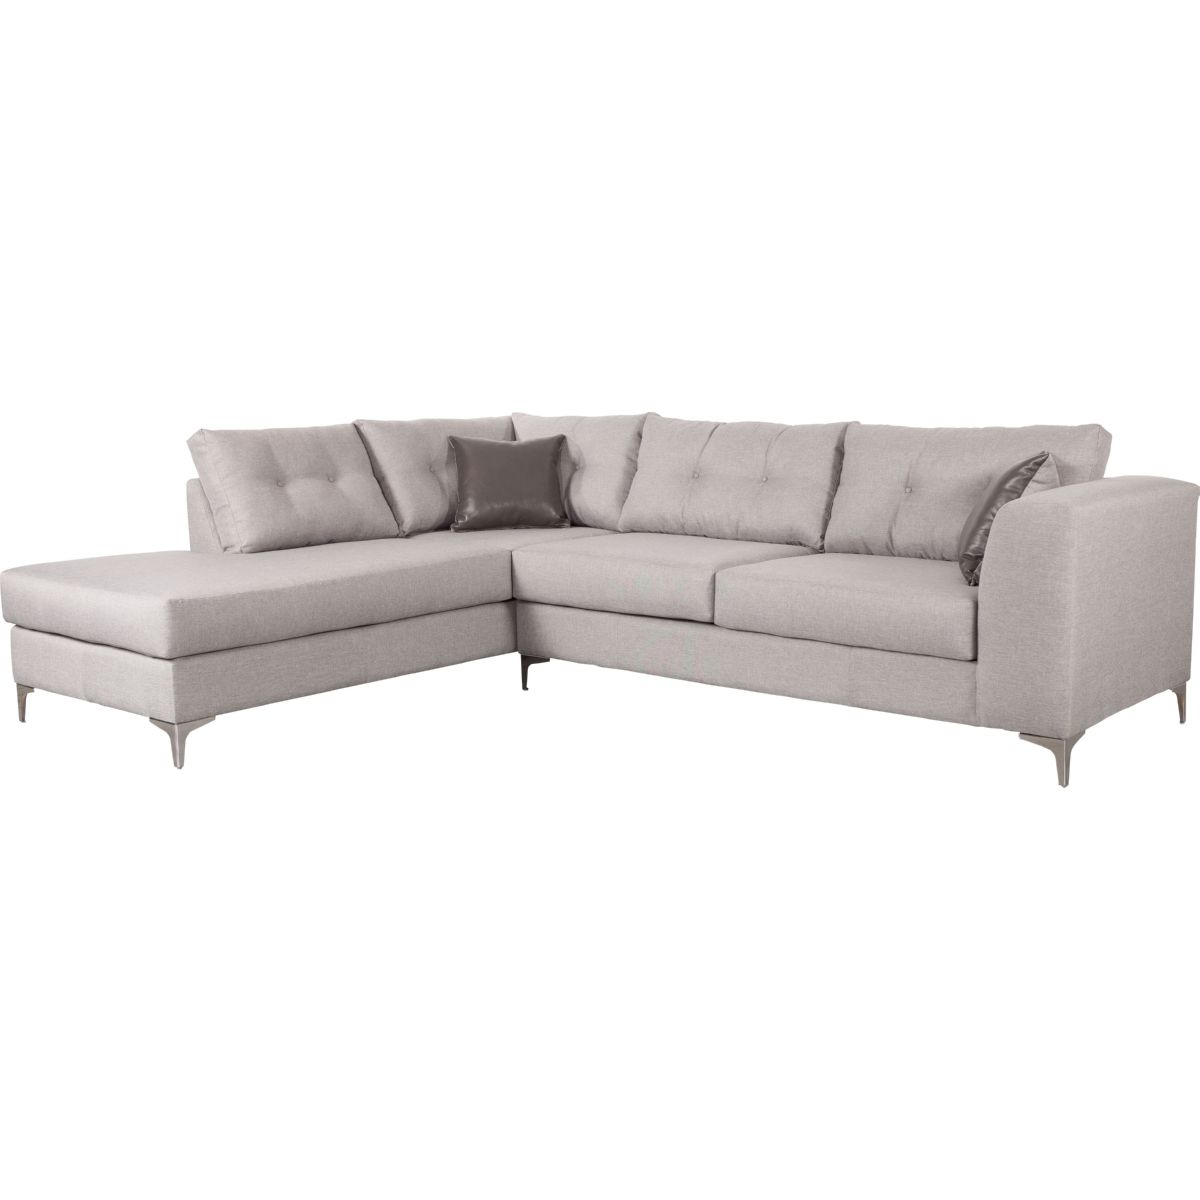 Memphis Left Hand Facing Sectional Sofa In Smoke Fabric U0026 Polished  Stainless Legs